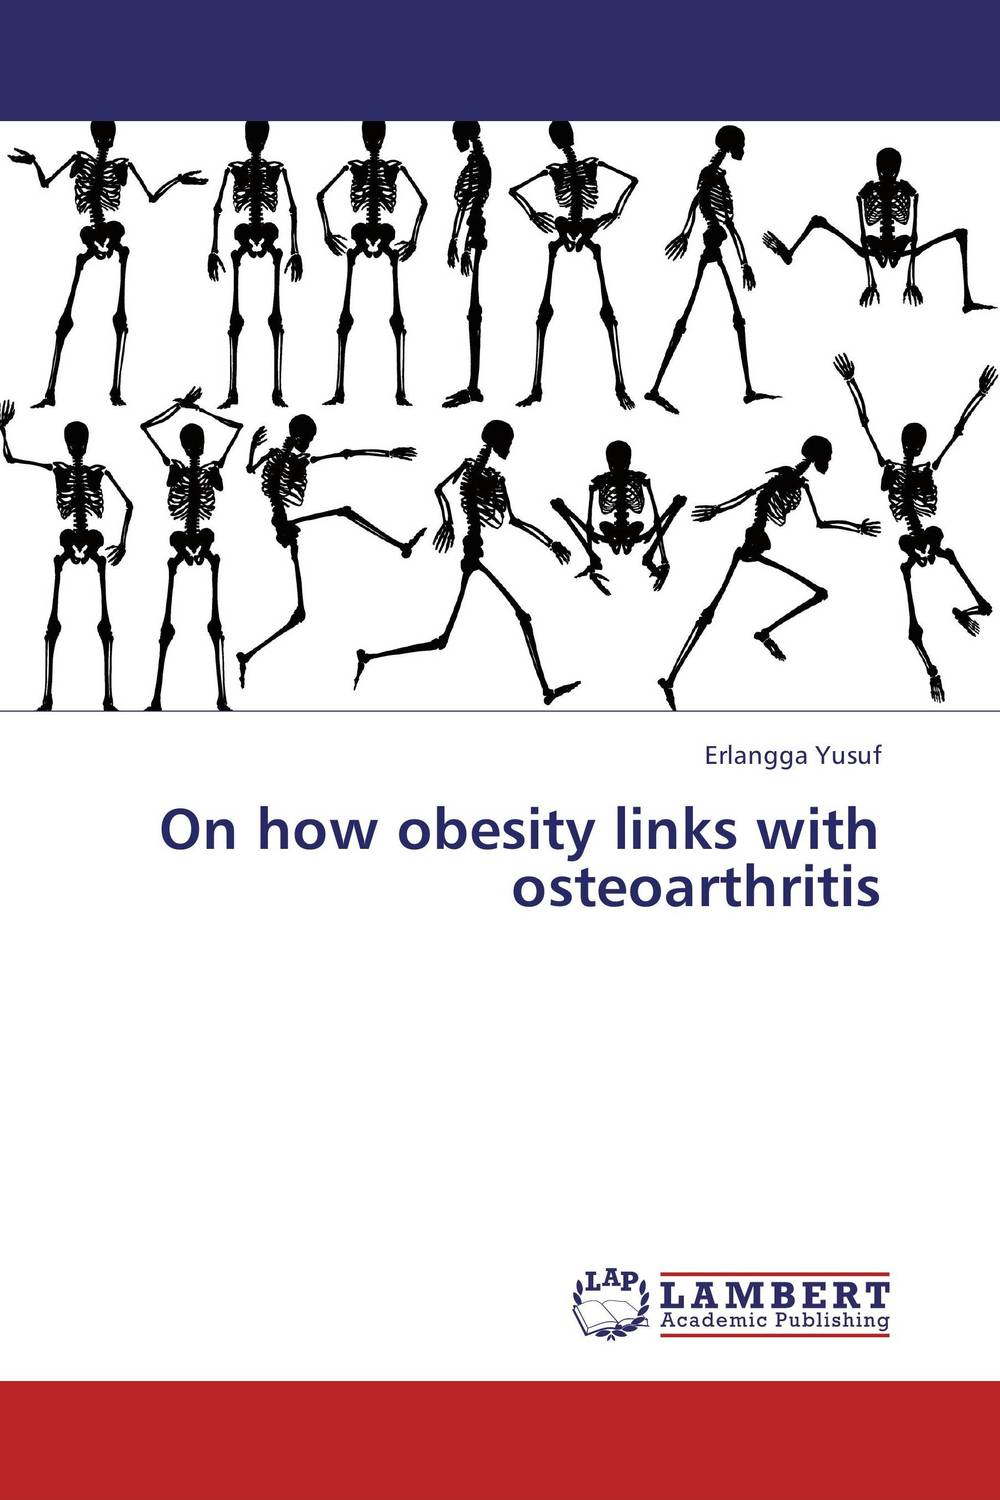 On how obesity links with osteoarthritis keen pain massager for the pain in knee joint and osteoarthritis knee treatment